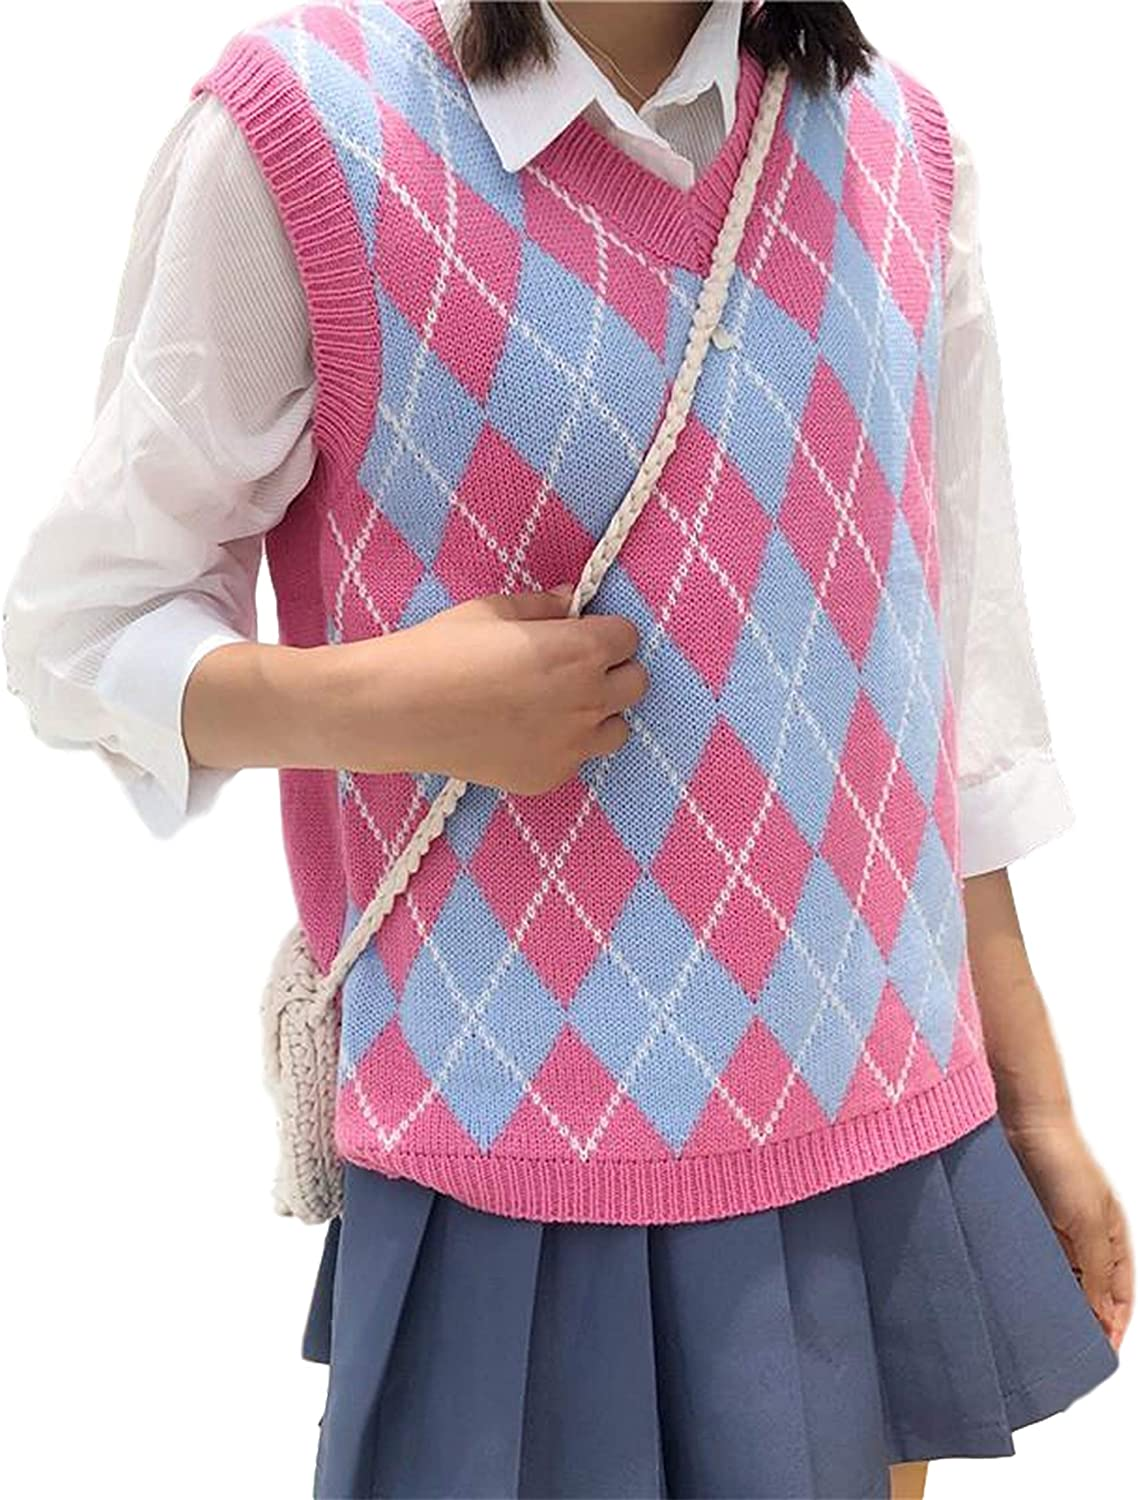 Uaneo Womens Basic Round Neck Sleeveless High Low Pullover Knit Sweater Vest